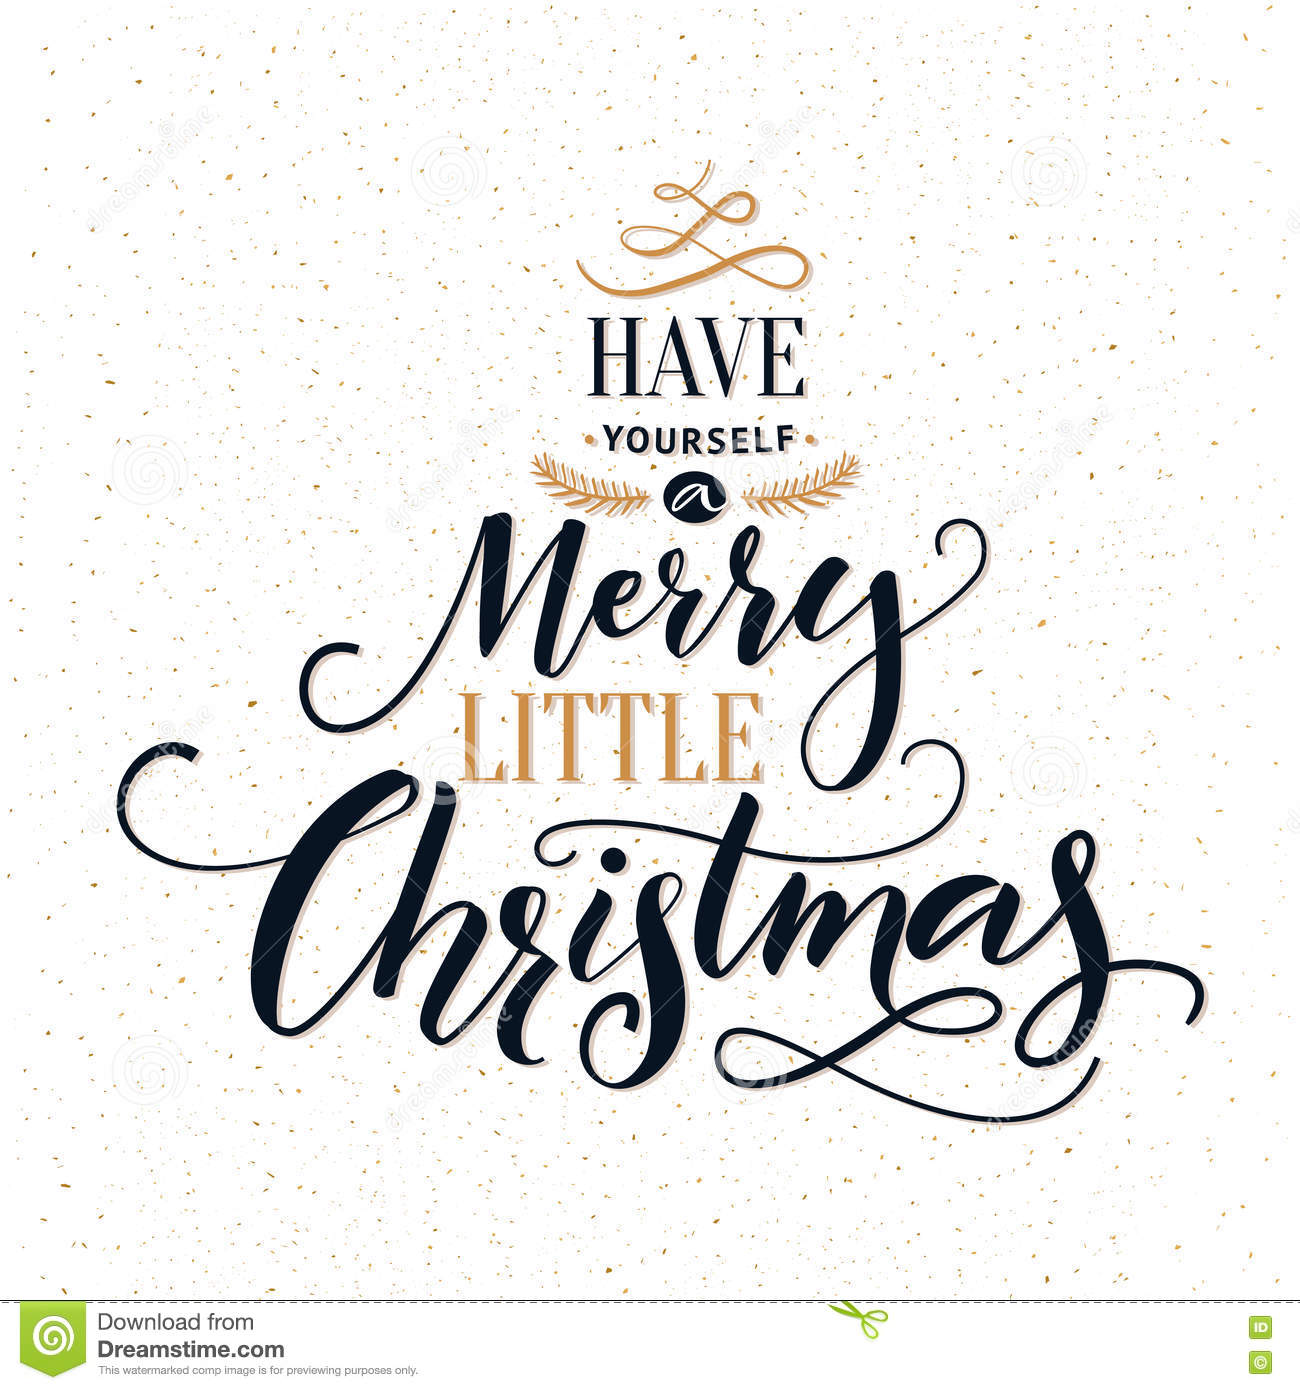 Have yourself a merry little christmas typography